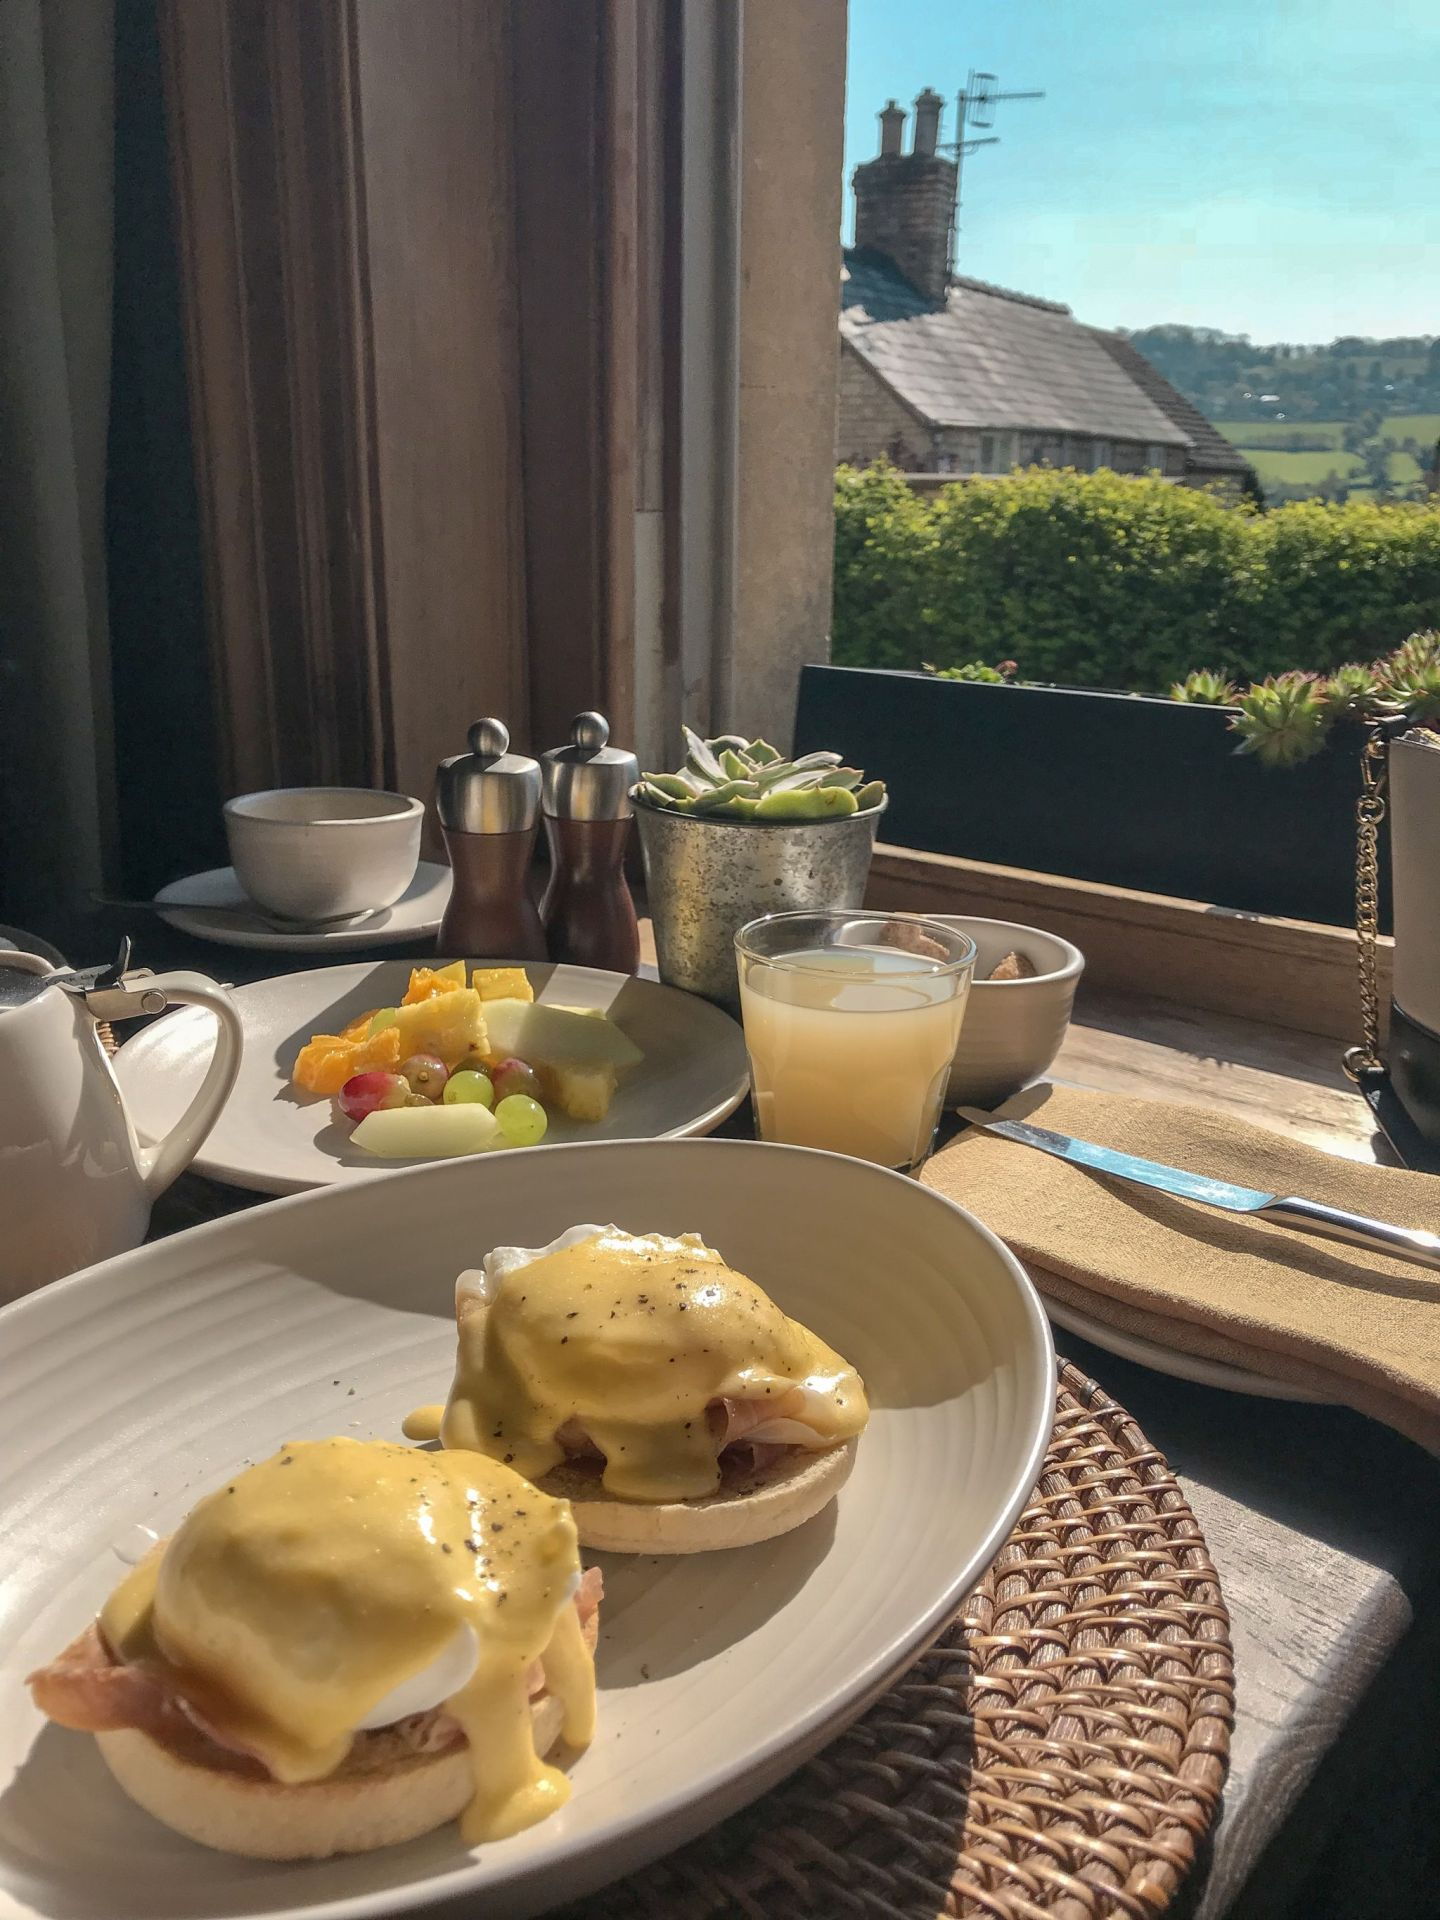 Stunning breakfast views at The Painswick